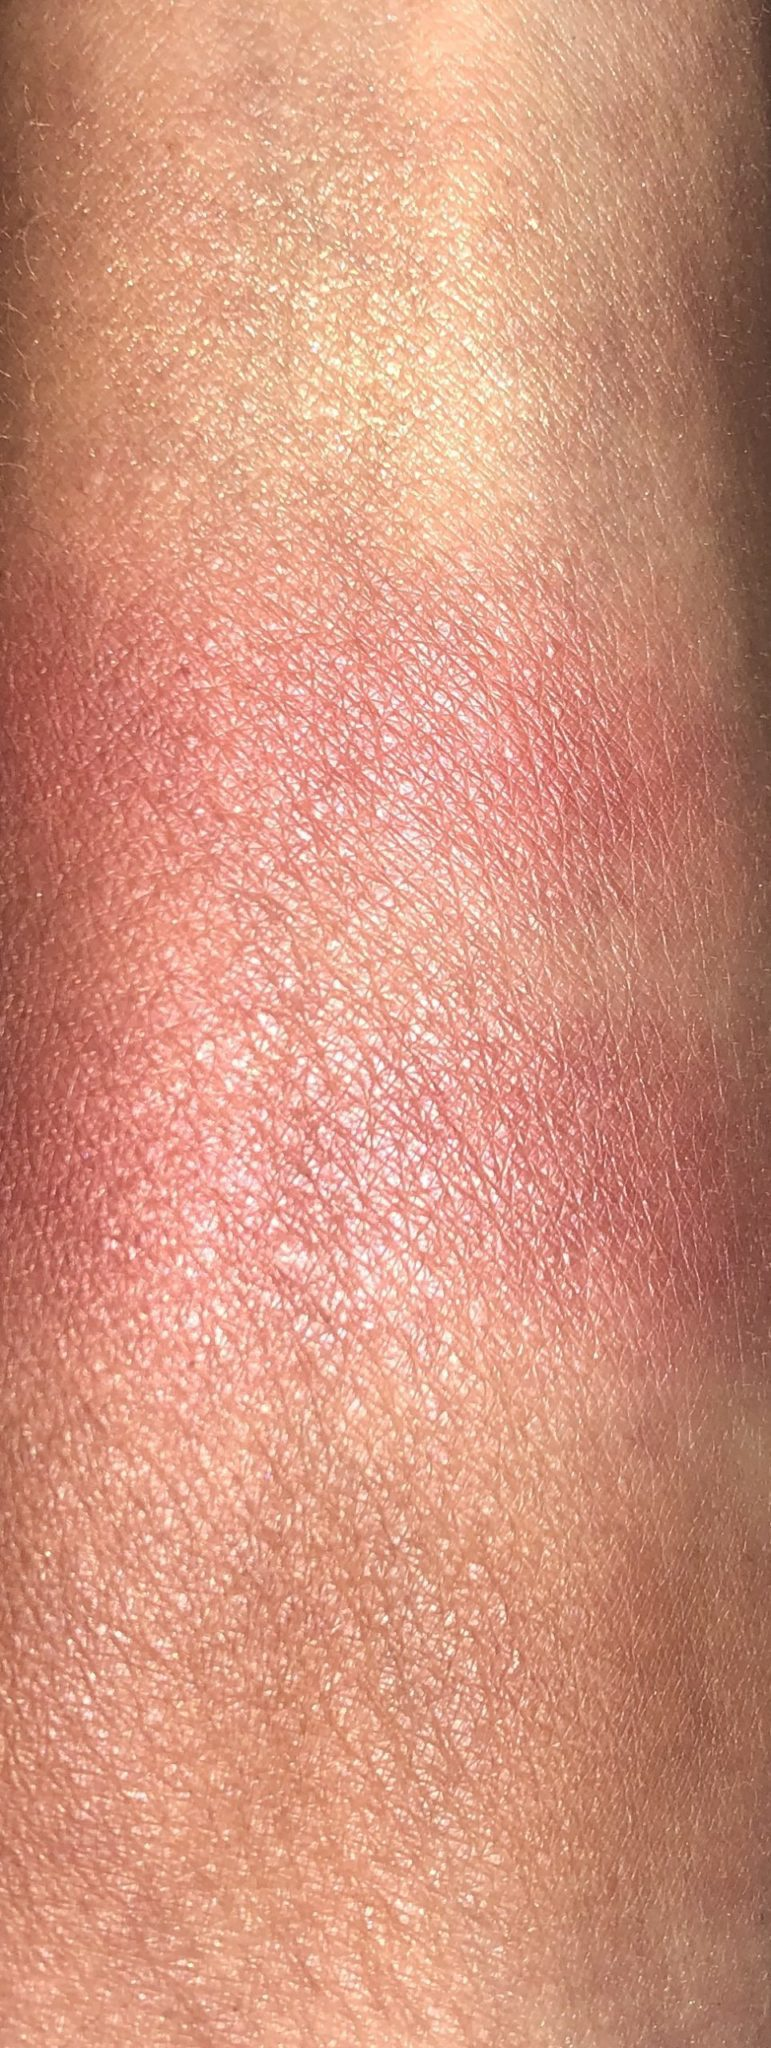 SWATCHES: TOP TO BOTTOM- SKINNY DIP, CHARMED, TEMPTED, SUNGAZE